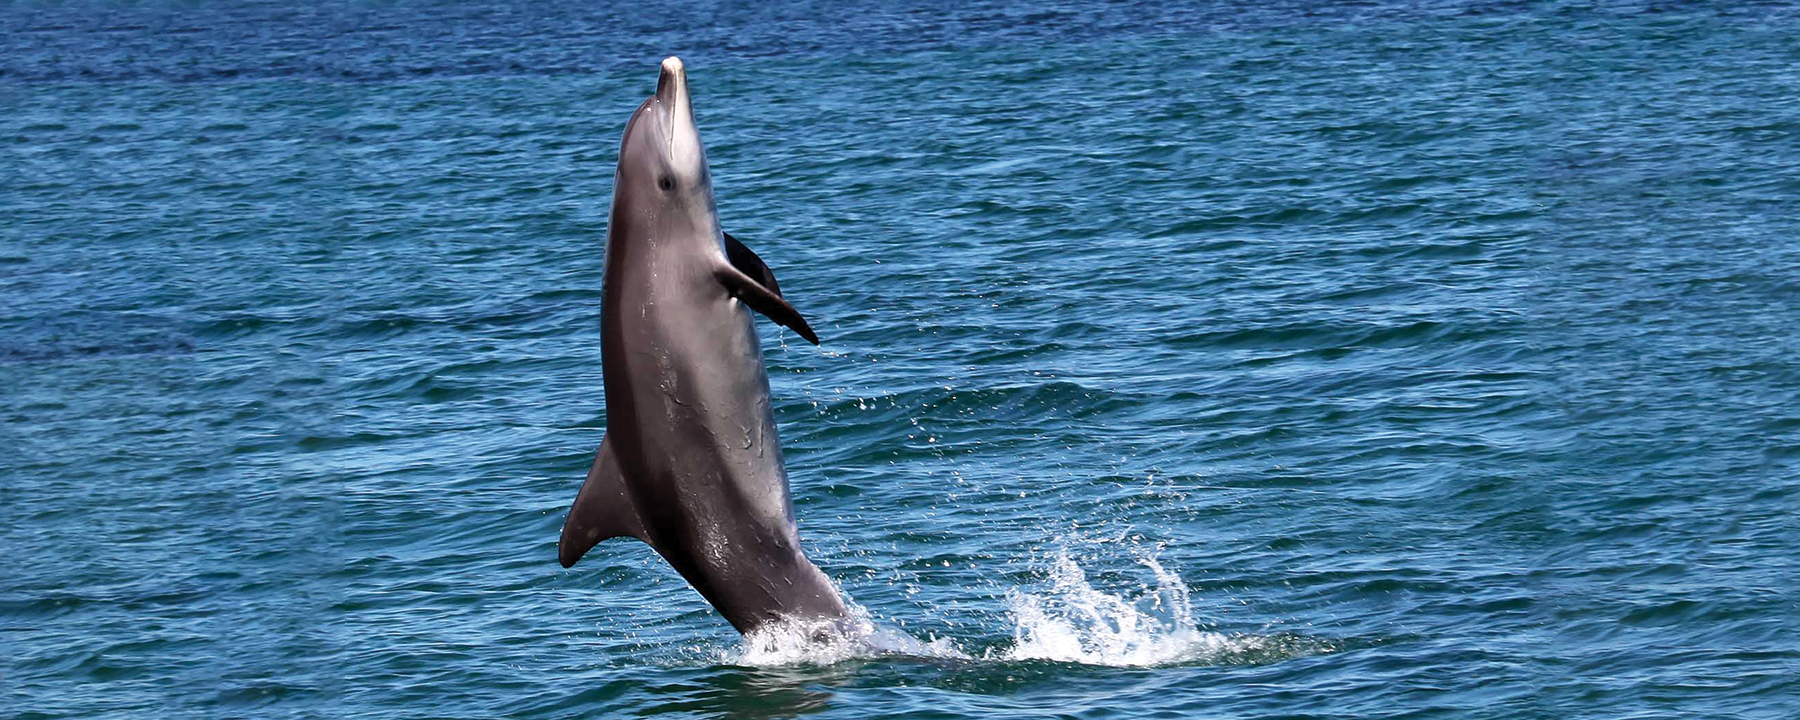 How One Wild Dolphin's Trick Became a Fad